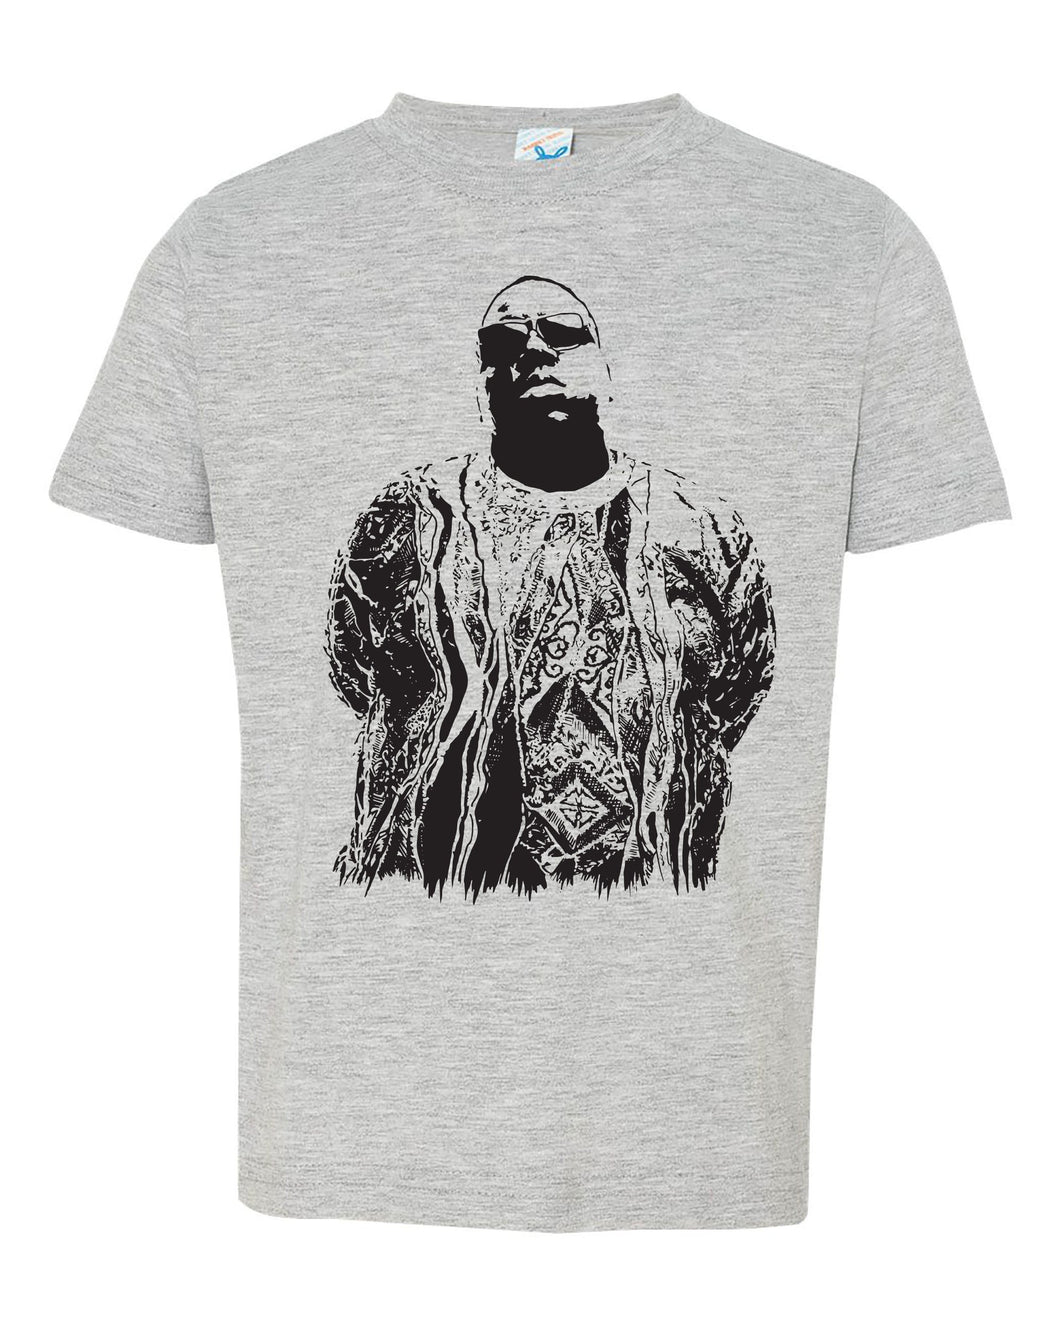 Biggie Sweater / Toddler / Youth Crew